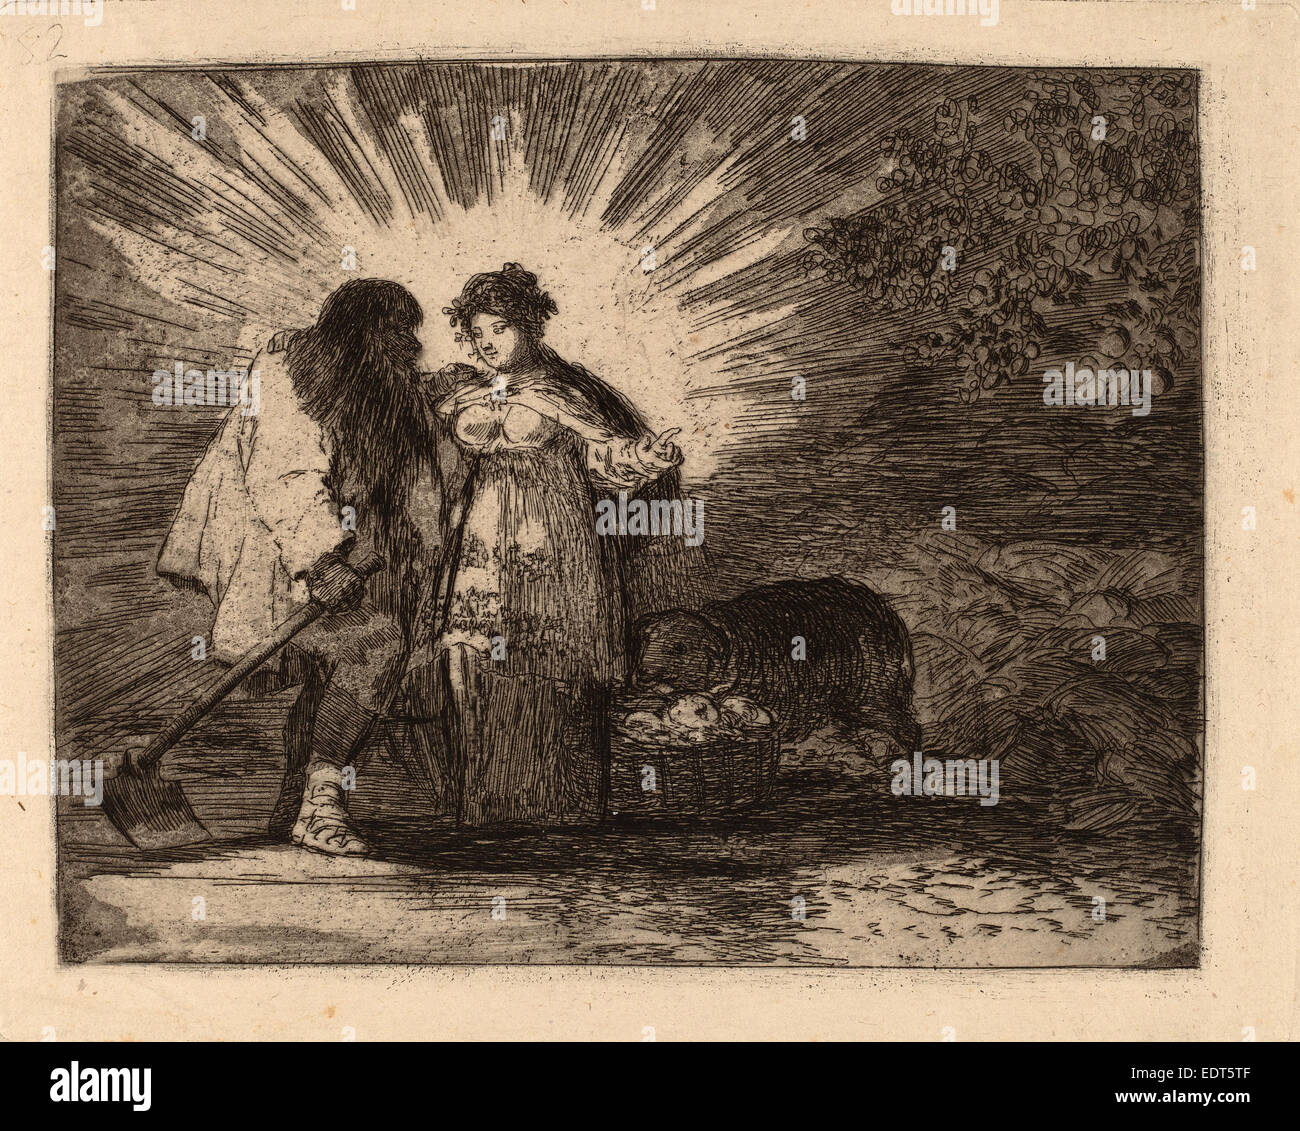 Francisco de Goya, Esto es lo verdadero (This Is the Truth), Spanish, 1746 - 1828, 1810-1820, etching, aquatint, - Stock Image